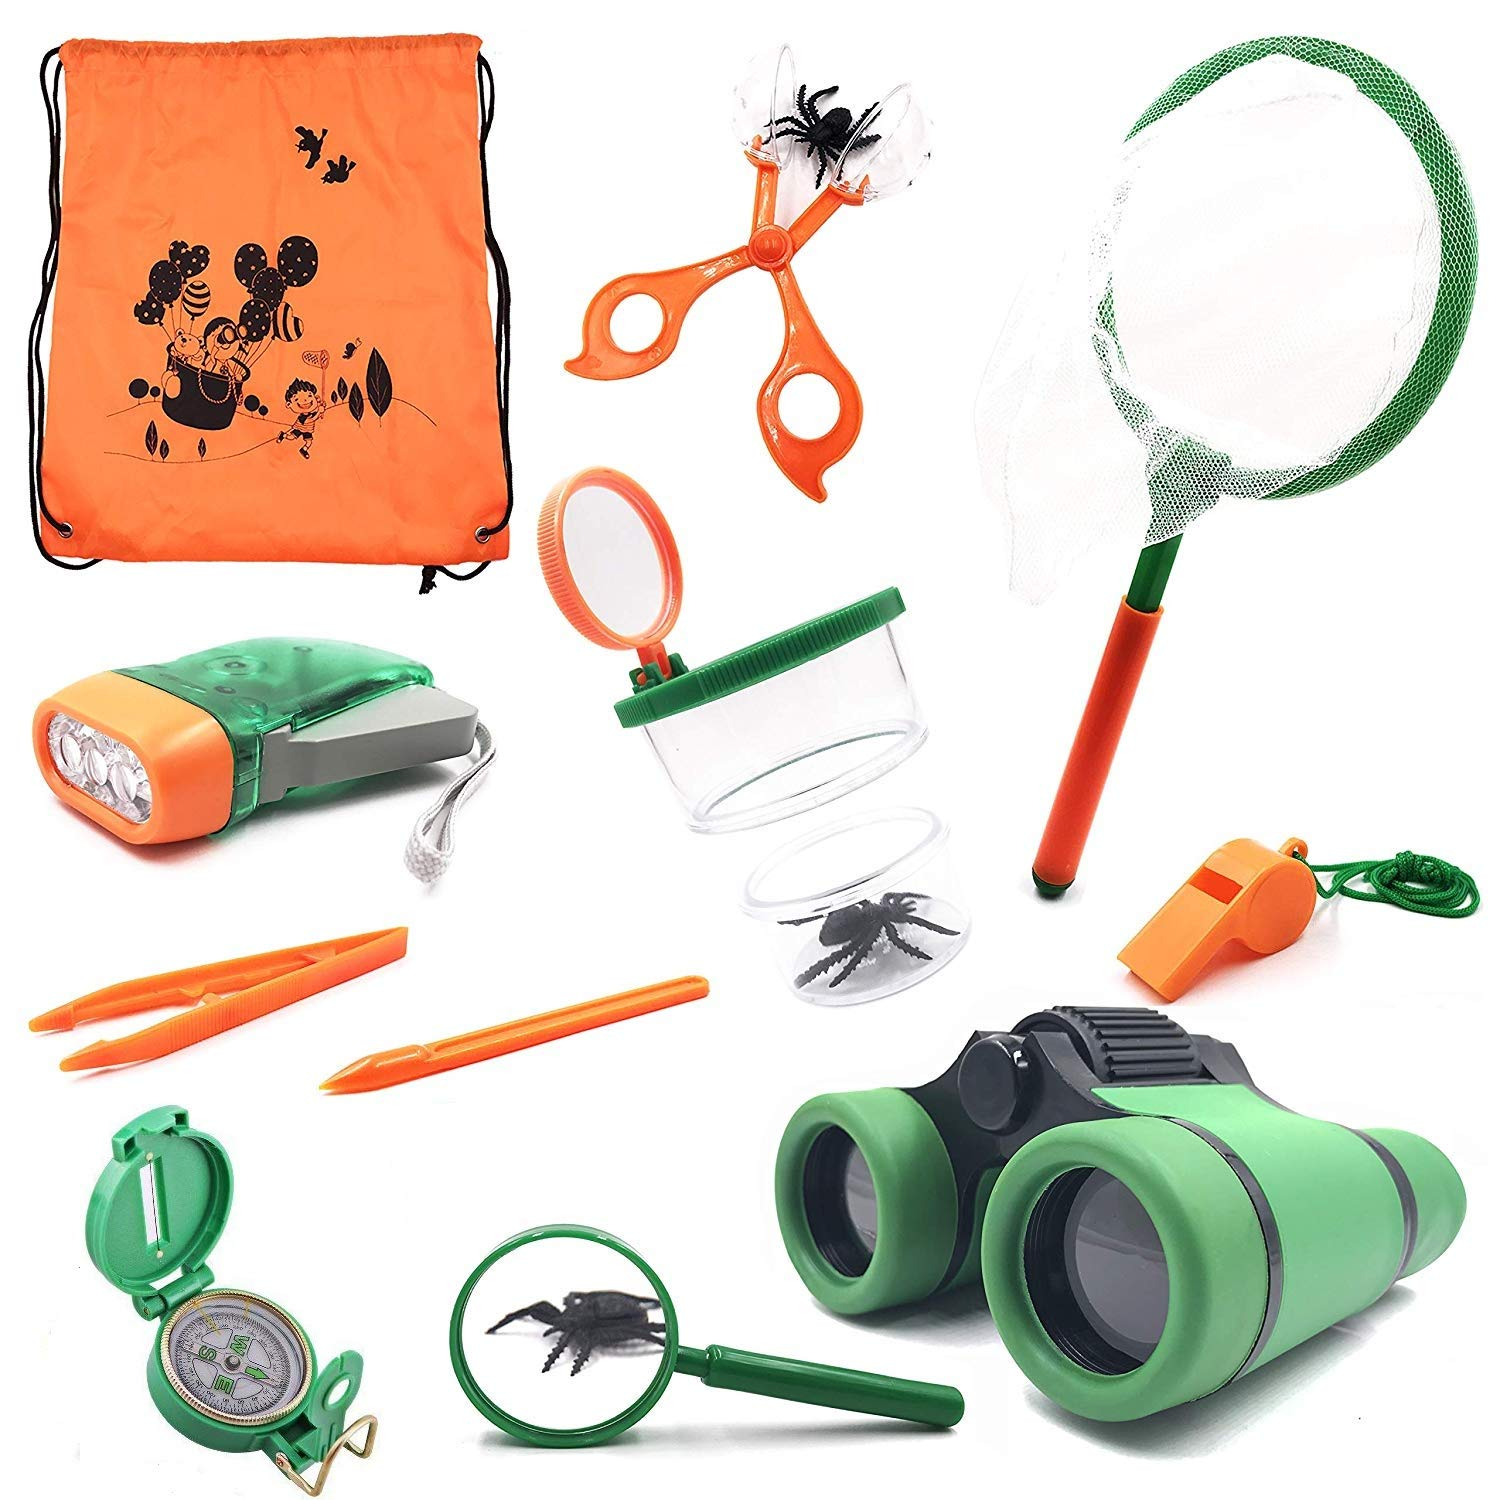 3f576792bd8 Adventure Kids - Outdoor Explorer Exploration Children s Toys  Kit-Binoculars  Flashlight  Compass  Whistle  Magnifying Glass  Butterfly  Net  Bug Catcher  ...